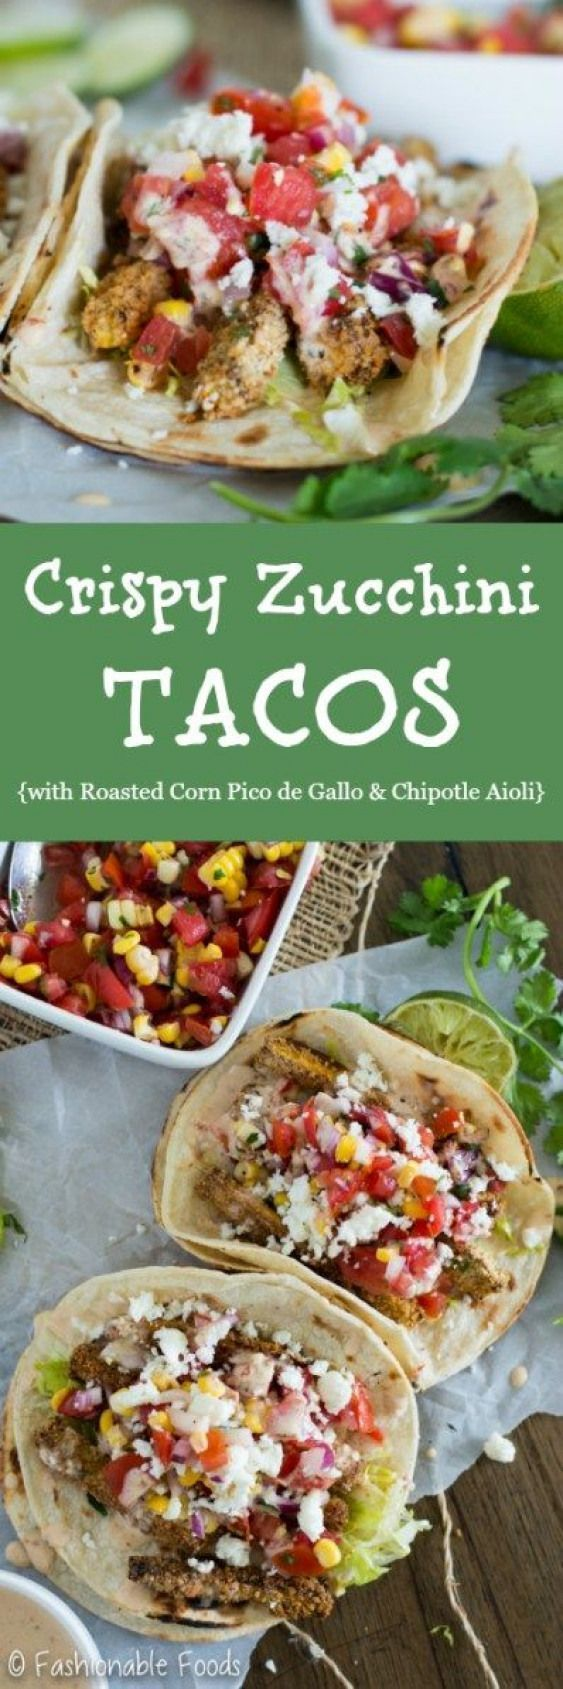 Your favorite recipe source for healthy food [Paleo, Vegan, Gluten free] #picodegallorecipes Crispy zucchini tacos are the perfect way to celebrate Taco Tuesday all summer long! These summer-inspired tacos are full of fresh flavors with a roasted corn pico deGallo and are finished off with a garlicky chipotle aioli. Taco heaven! #paleodinner #picodegallorecipes Your favorite recipe source for healthy food [Paleo, Vegan, Gluten free] #picodegallorecipes Crispy zucchini tacos are the perfect way t #picodegallorecipes